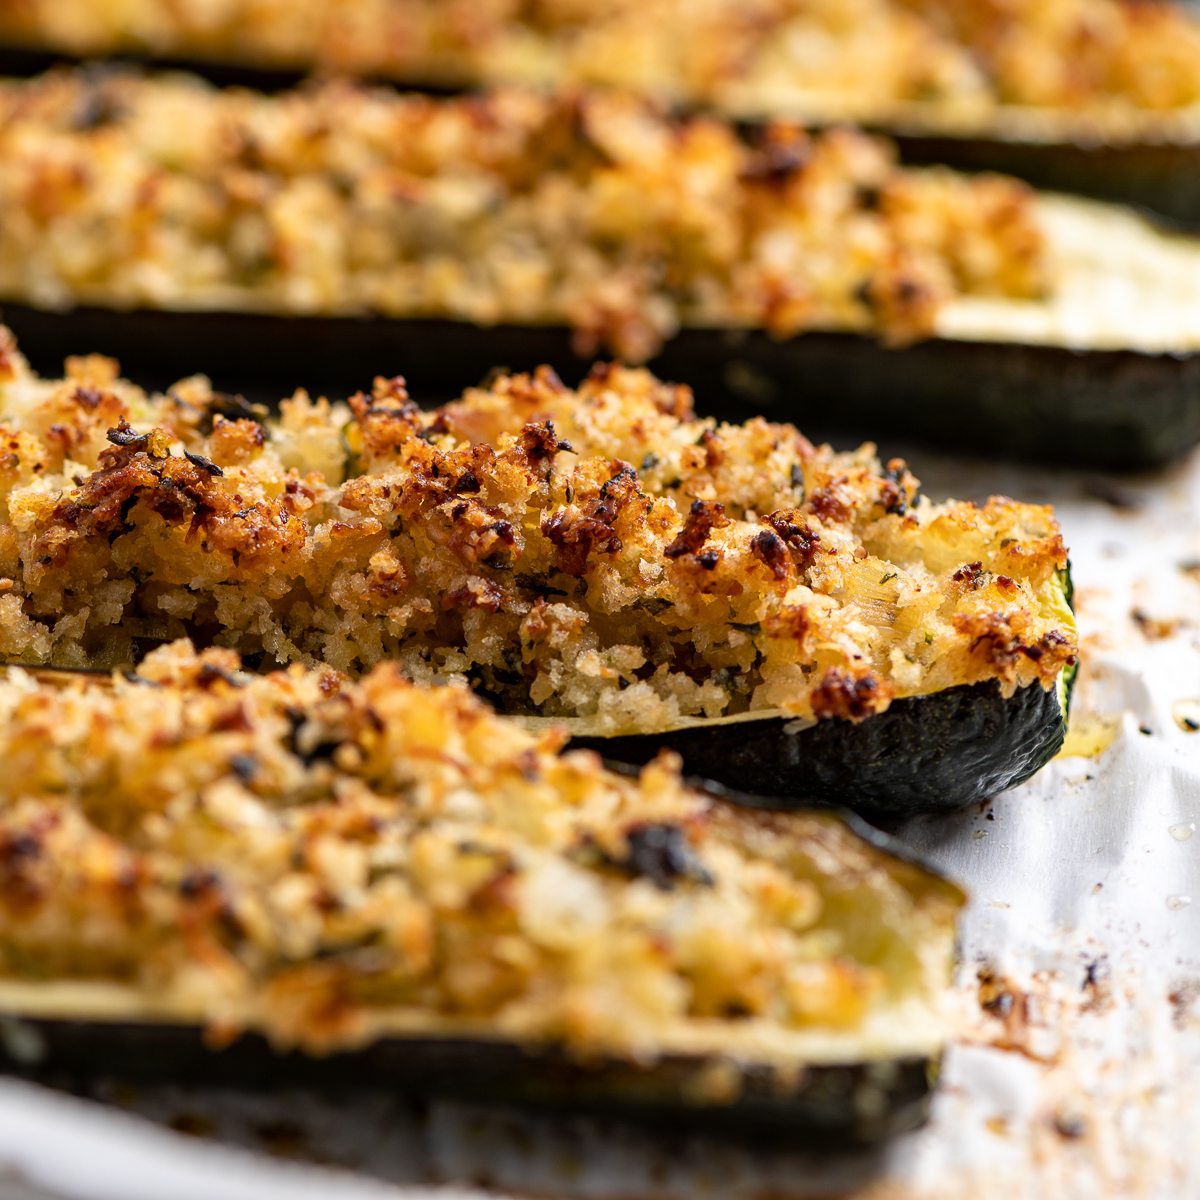 Golden brown roasted stuffed zucchinis on a baking sheet.